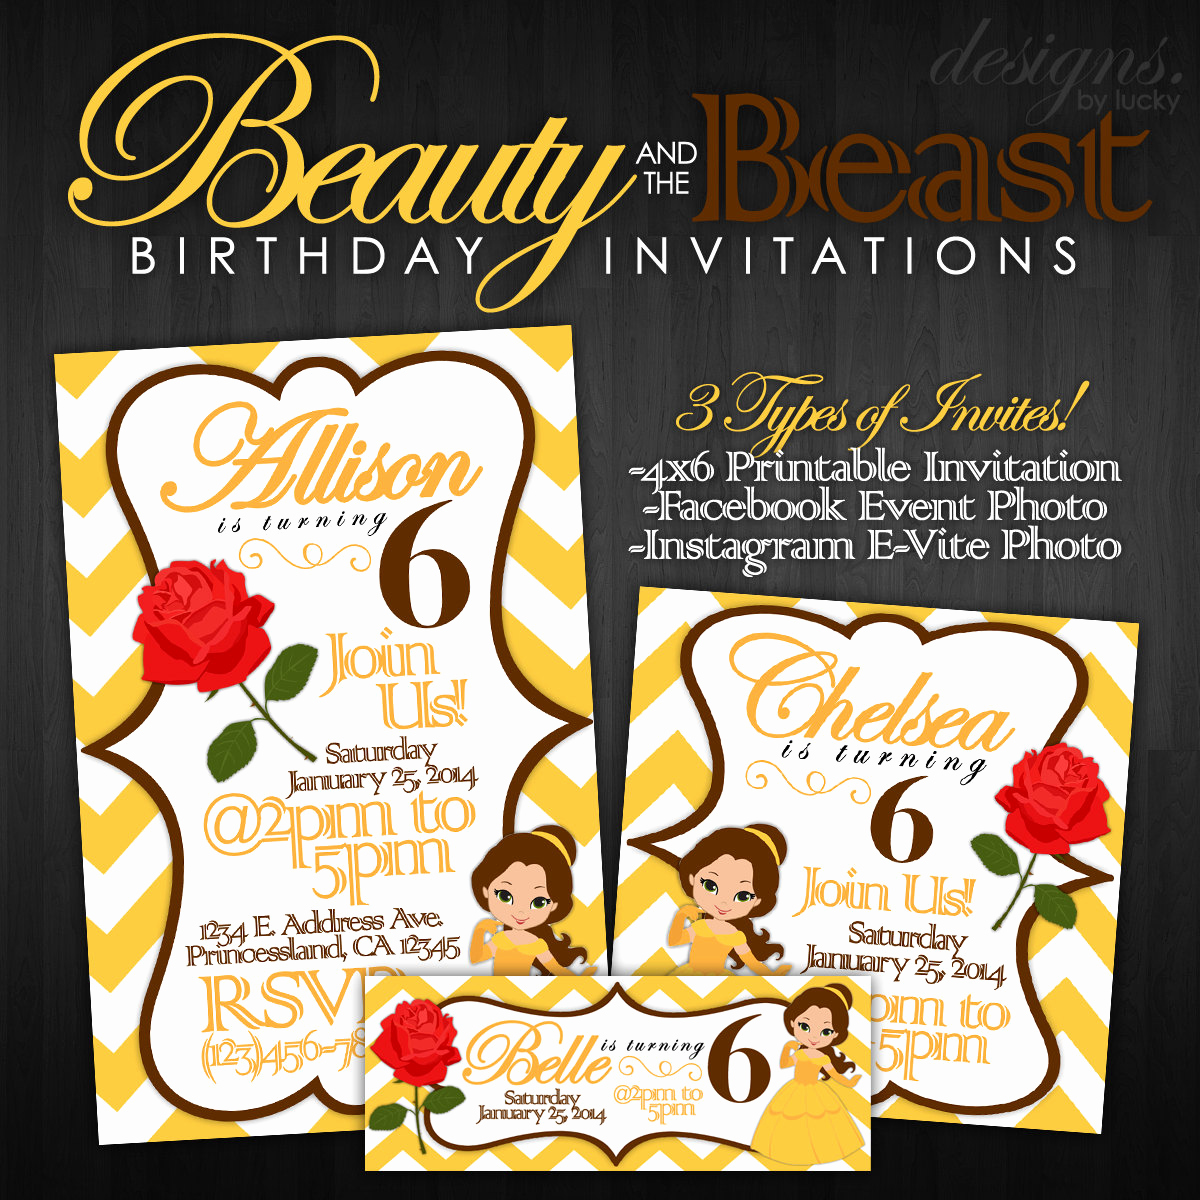 Beauty and the Beast Invitation Awesome Beauty and the Beast Birthday Invitations by Designsbylucky